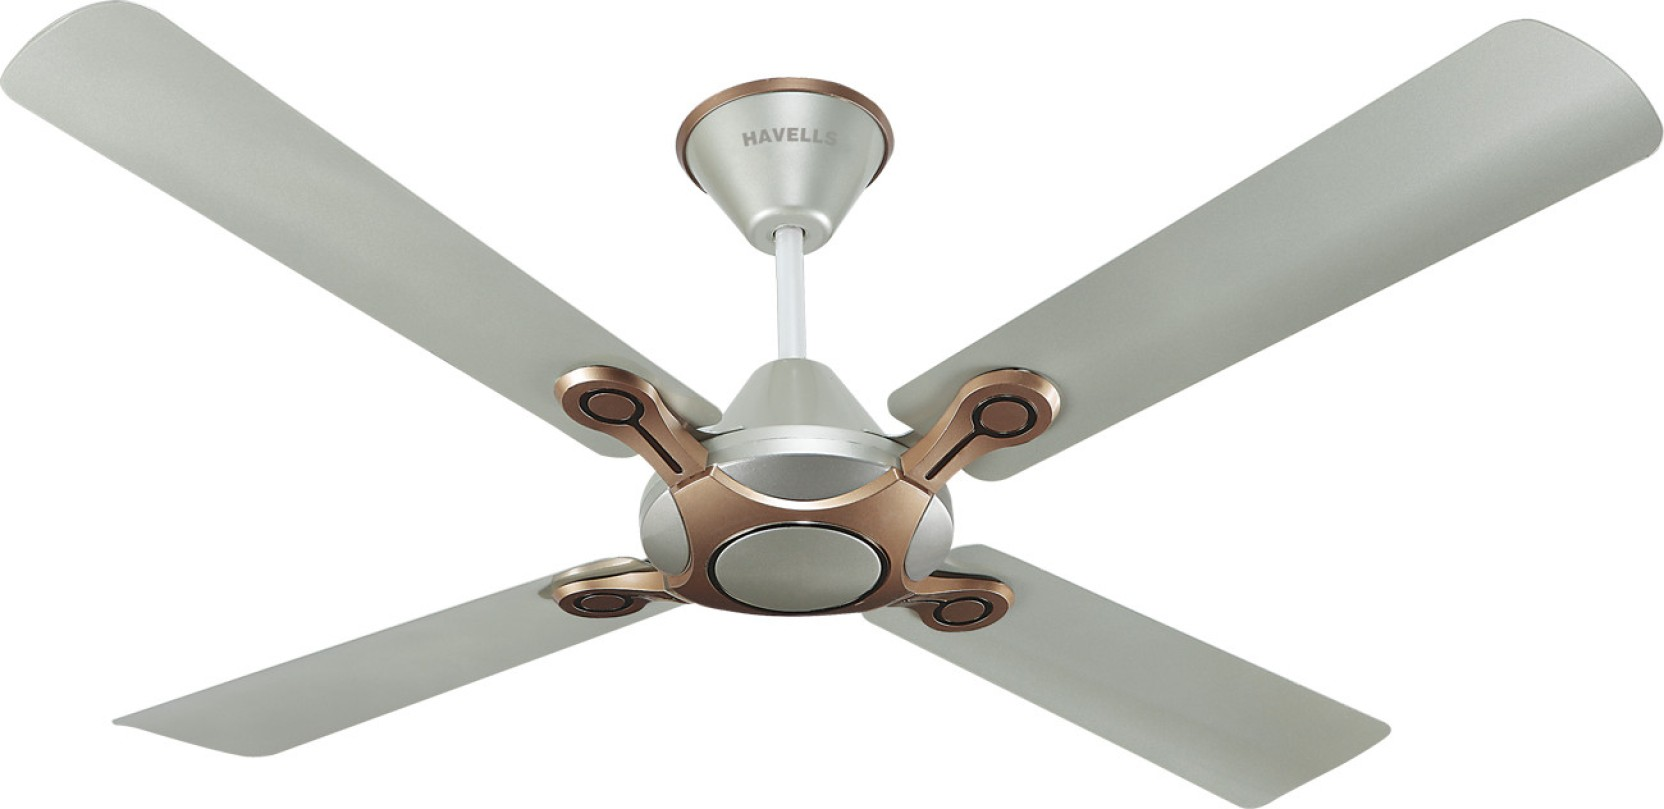 Havells Leganza 4blade 4 Blade Ceiling Fan Price In India